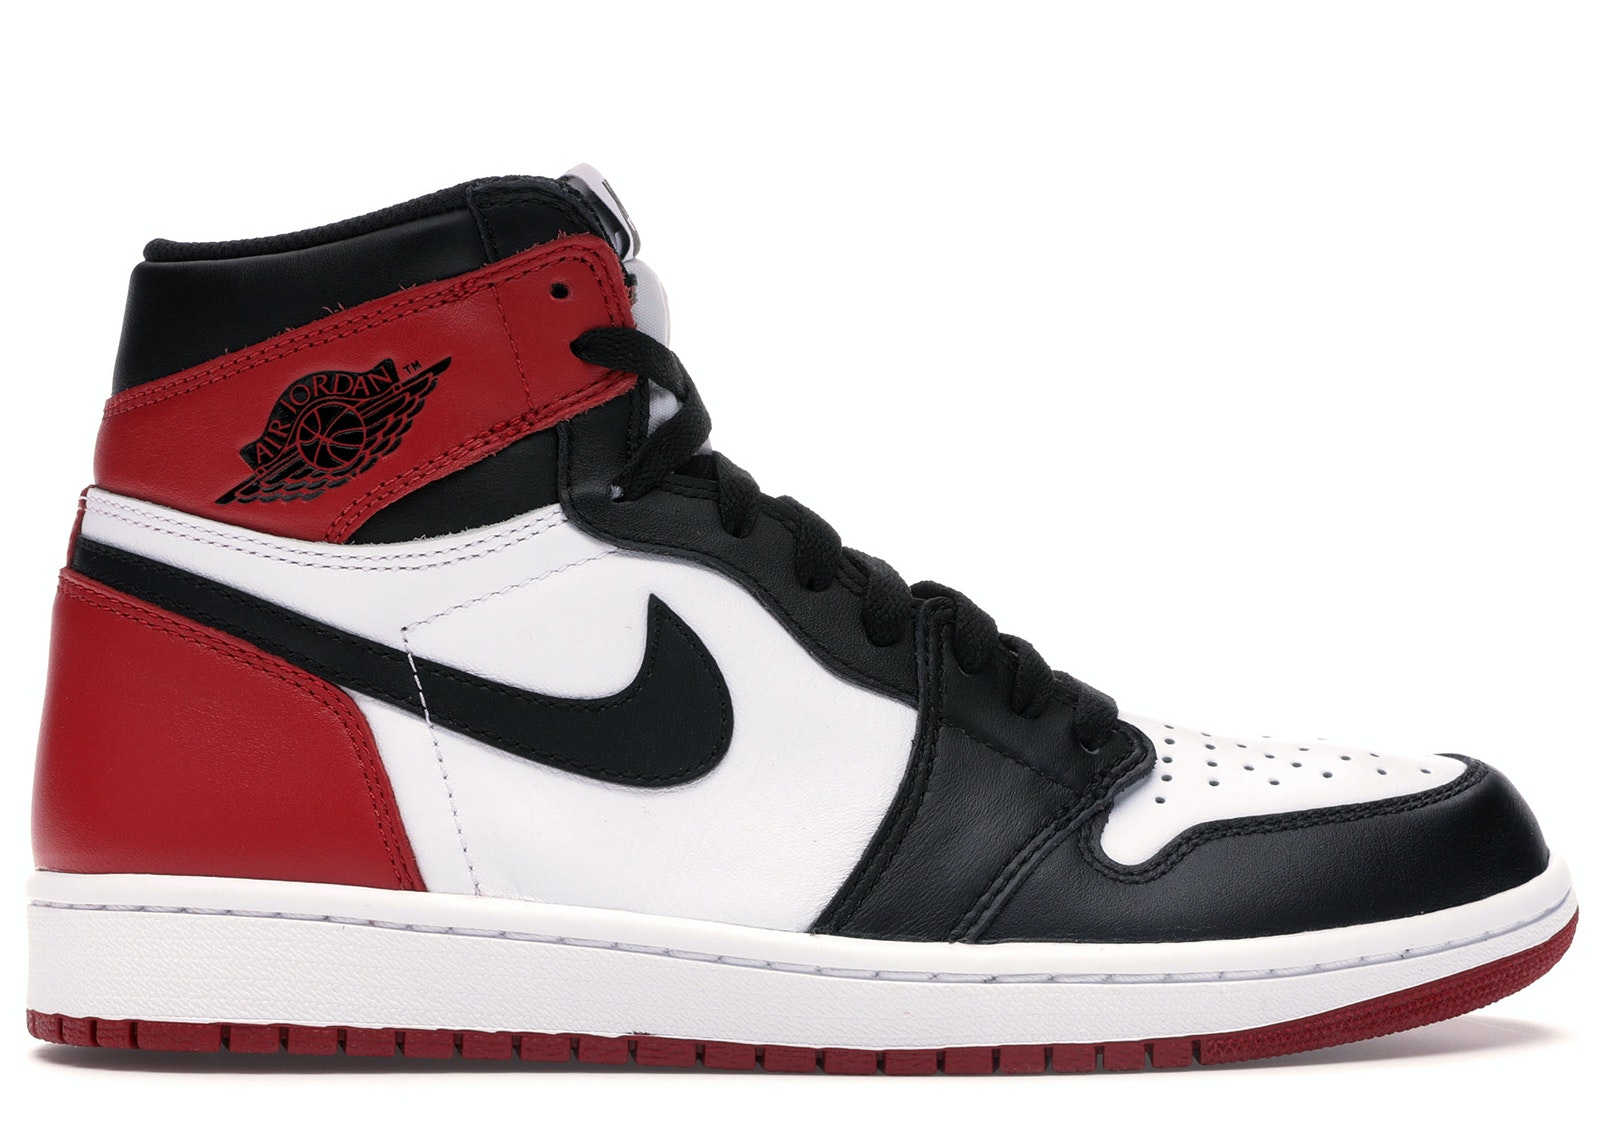 red and black jordan 1